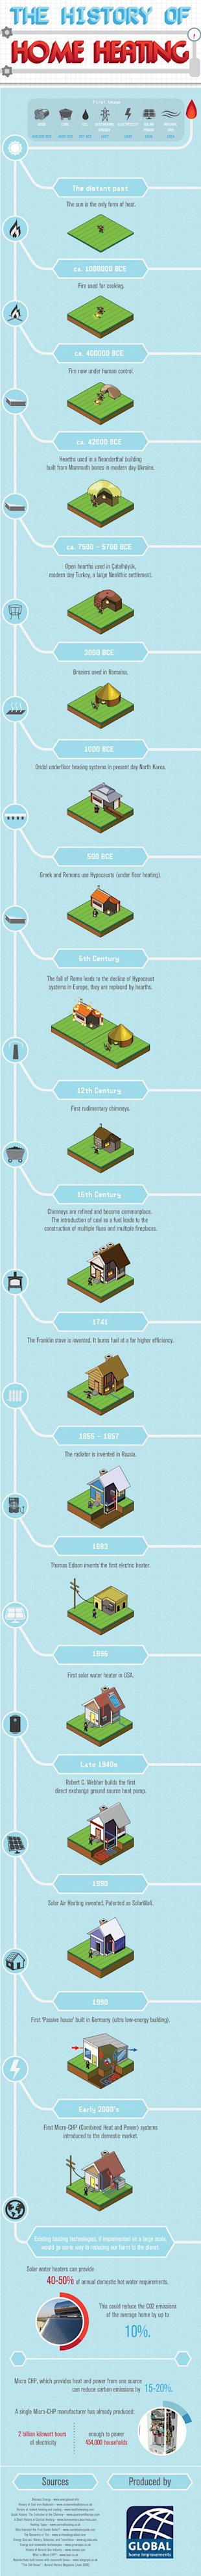 The History of Home Heating [Infographic] image history of home heating21 resize